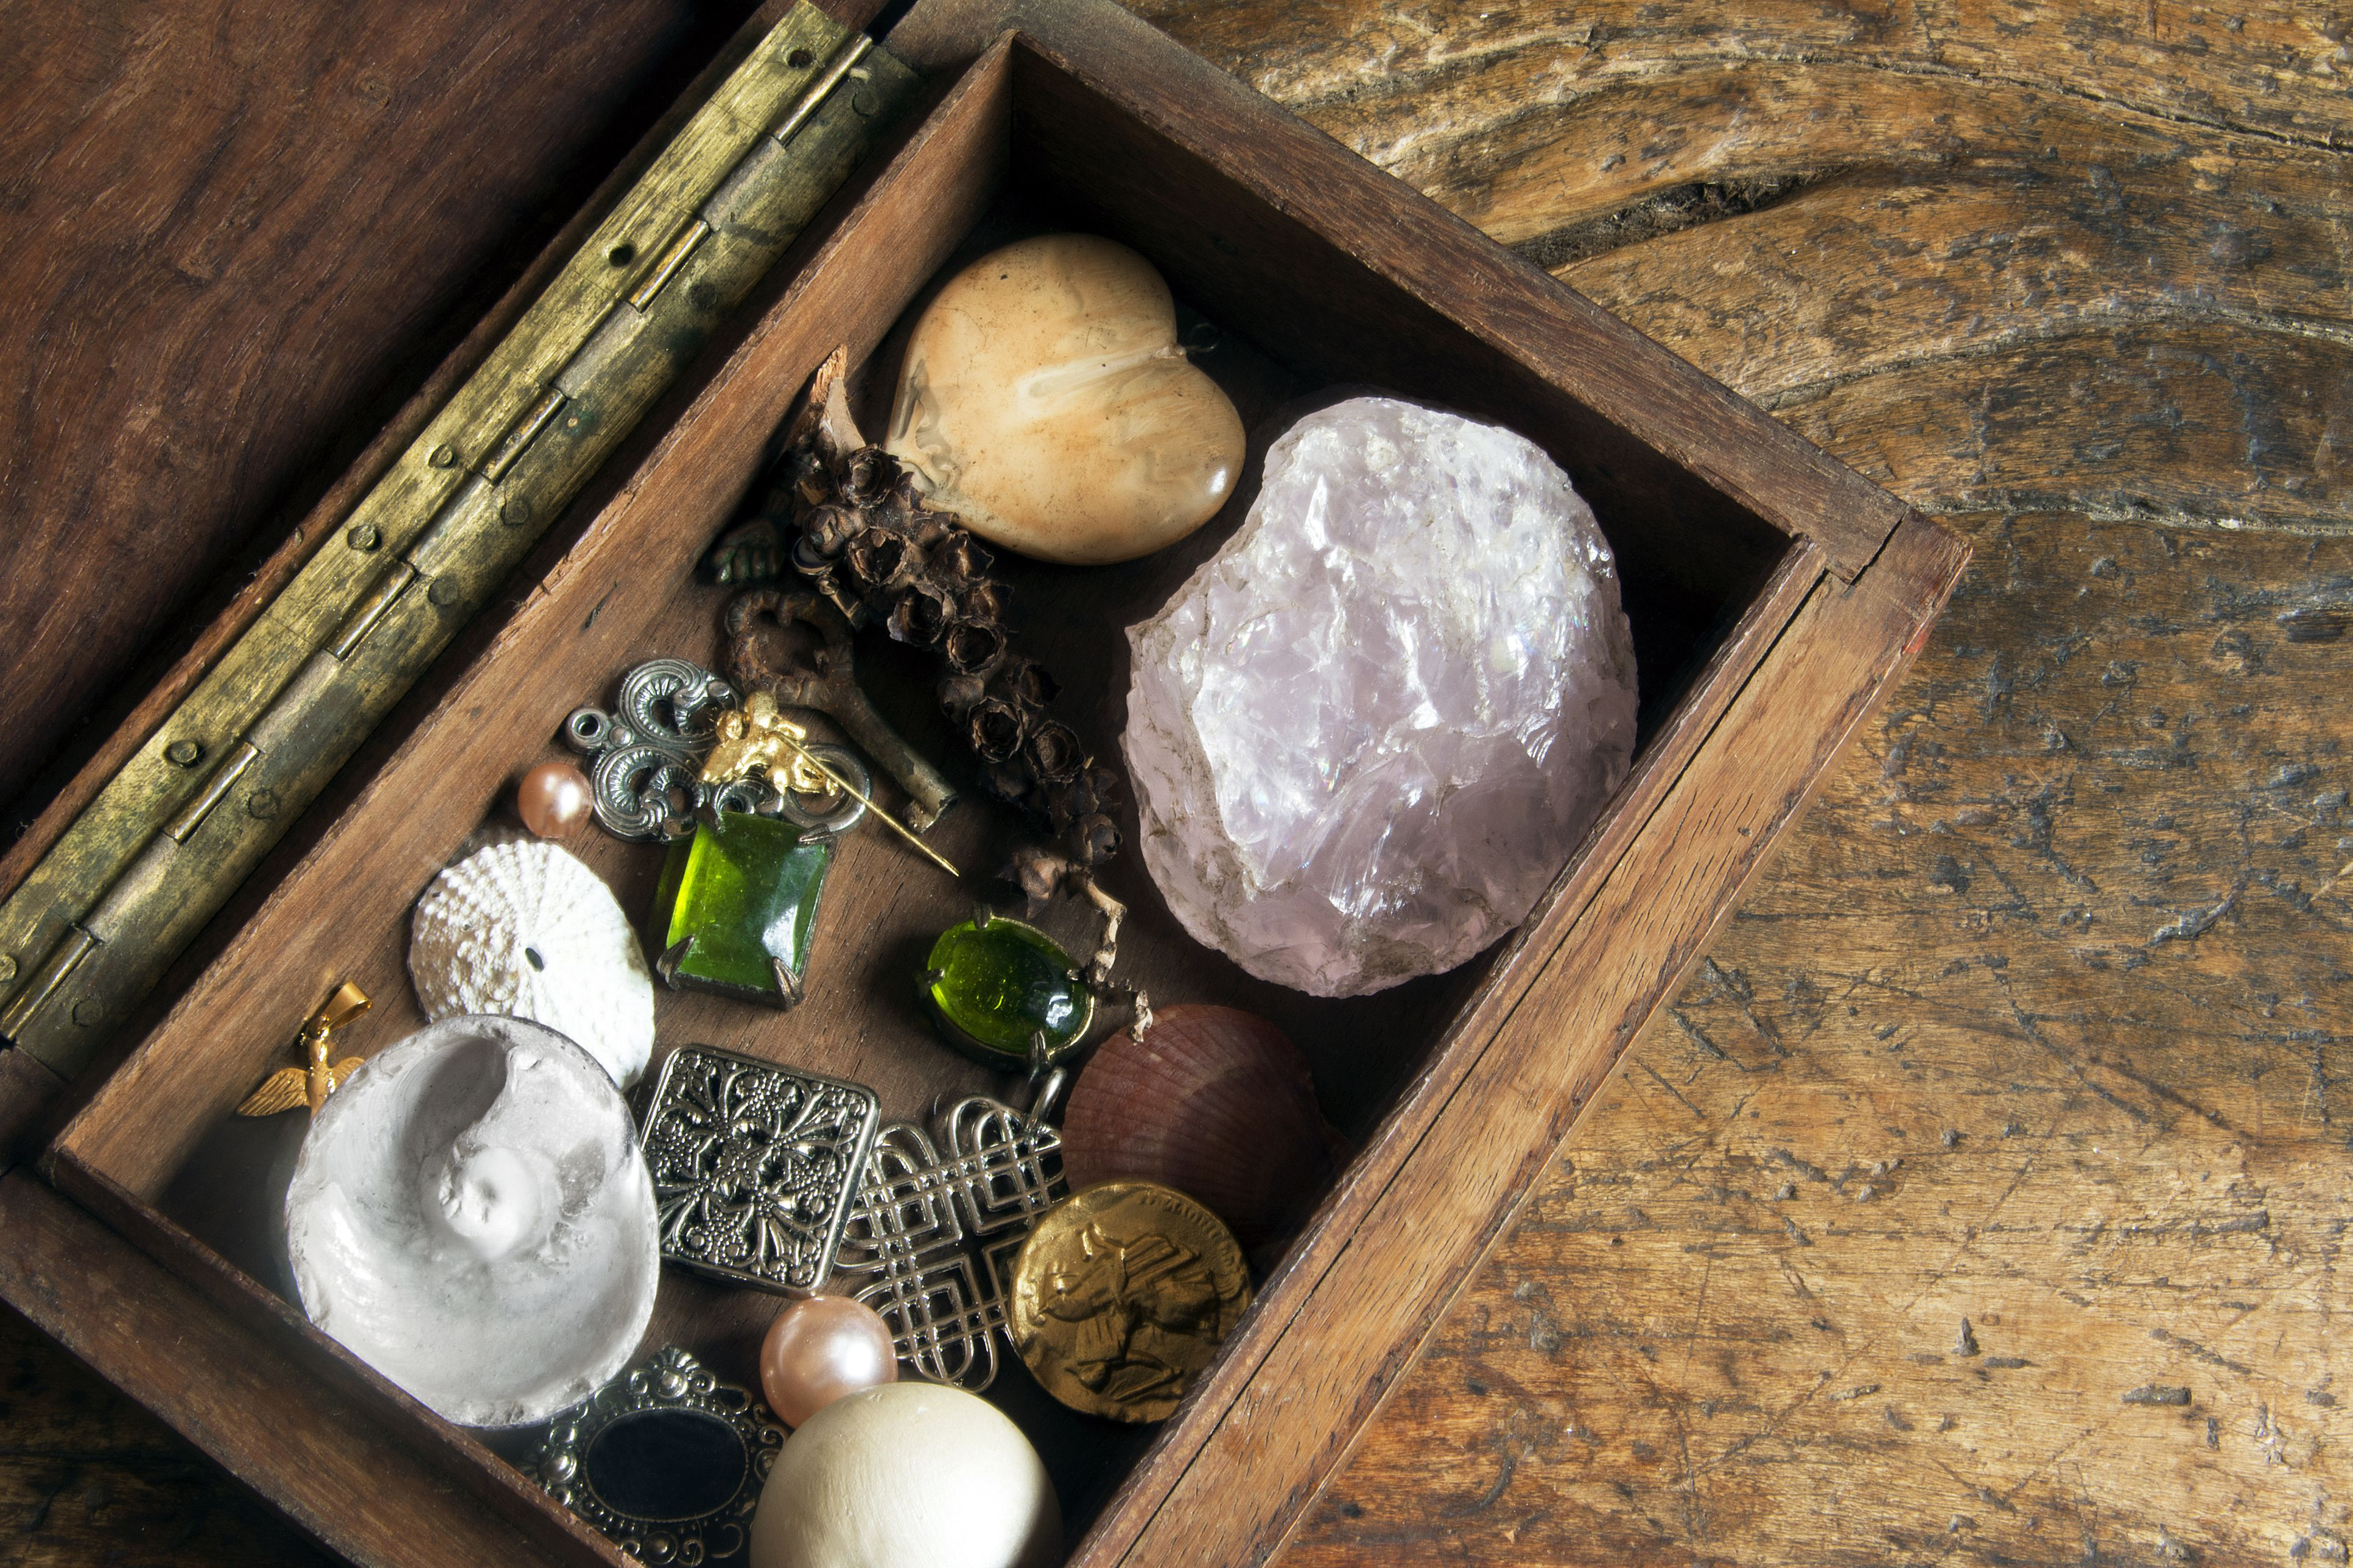 Old box with crystals and jewelry